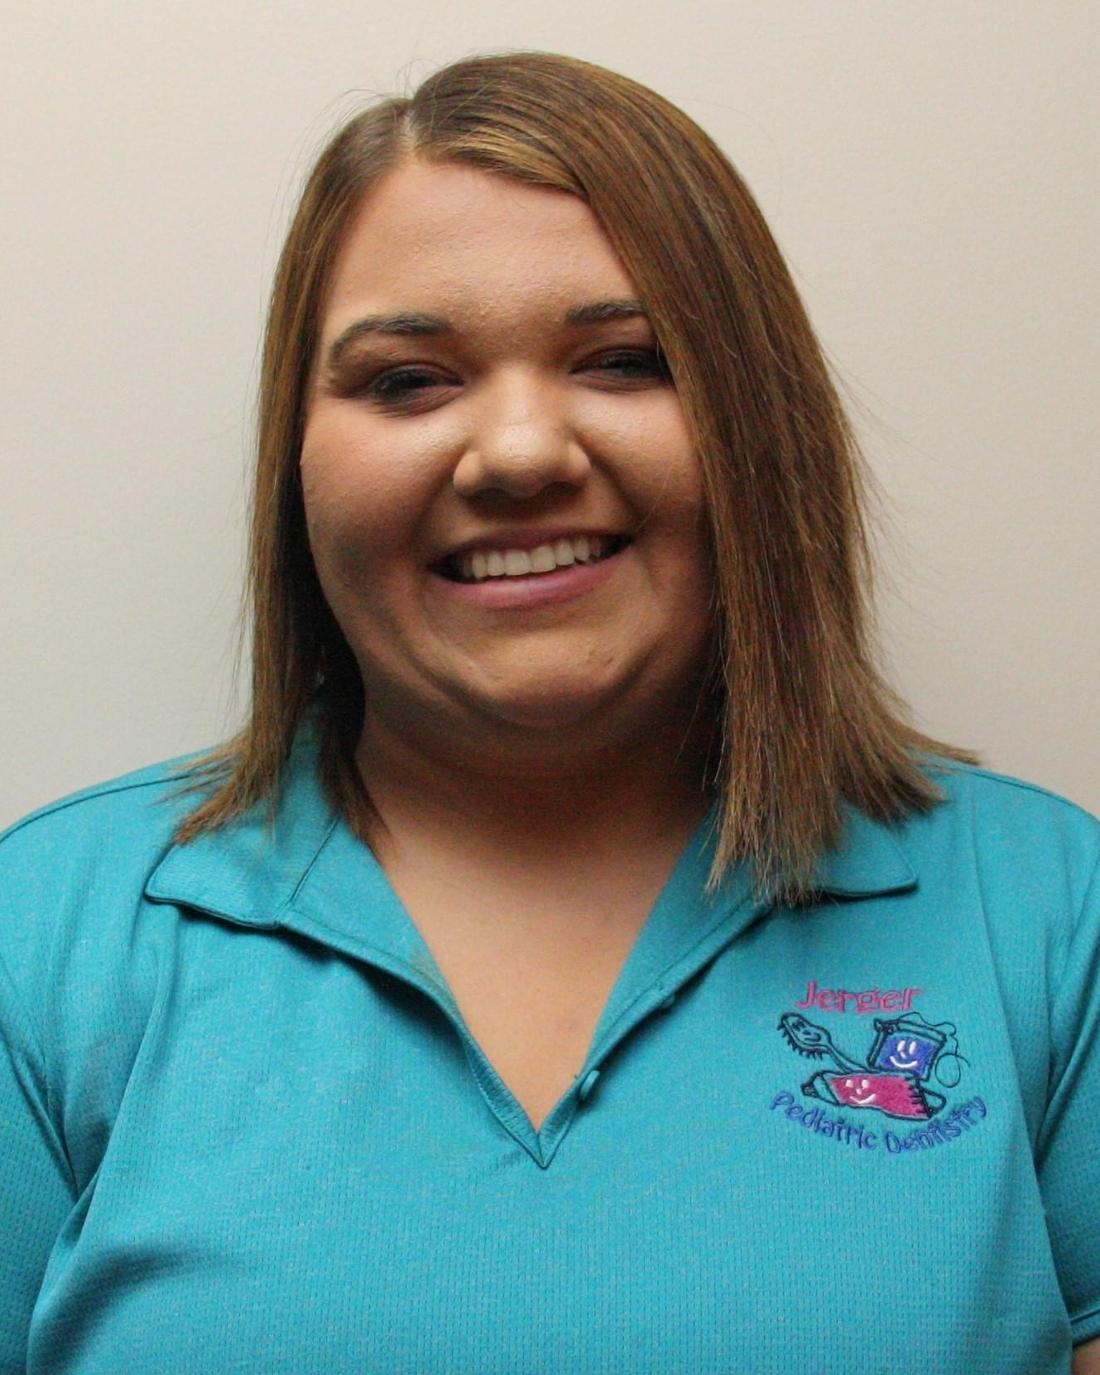 Kayla Headshot | Dental Assistant in Decatur, IL